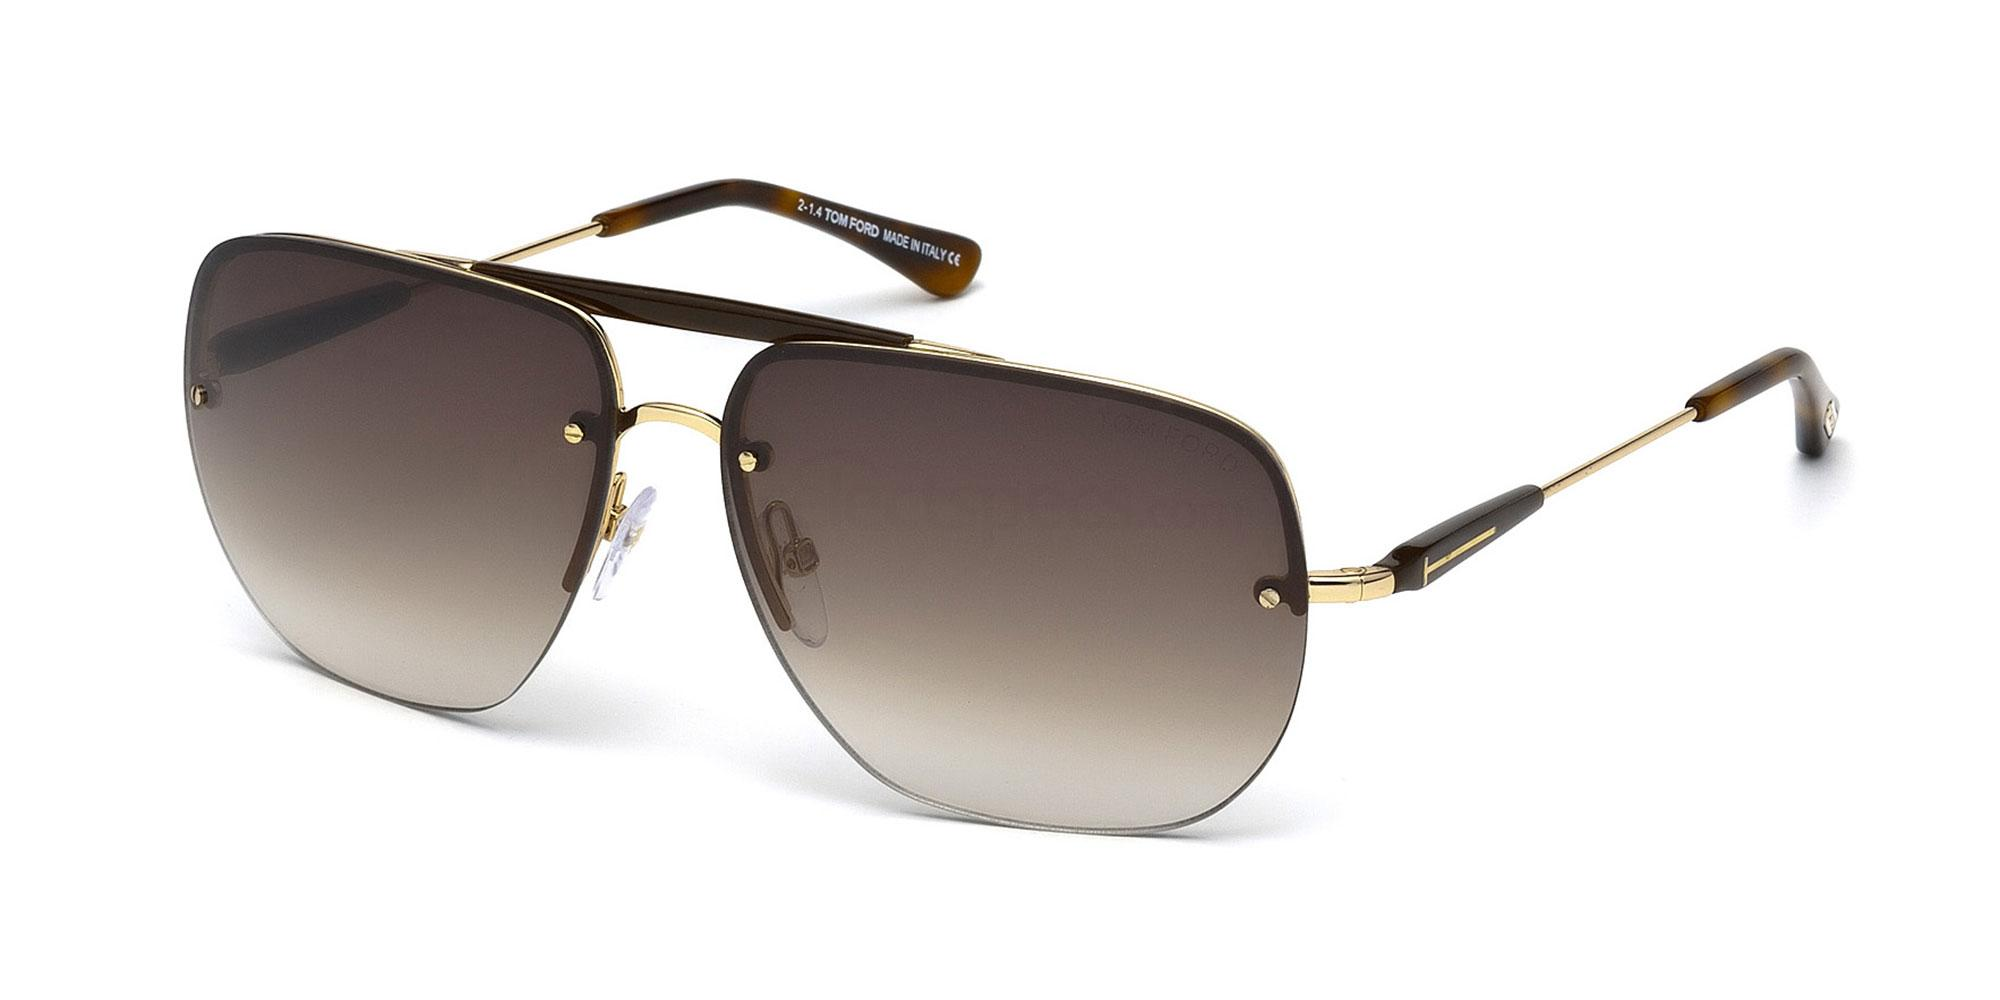 28F FT0380 Sunglasses, Tom Ford